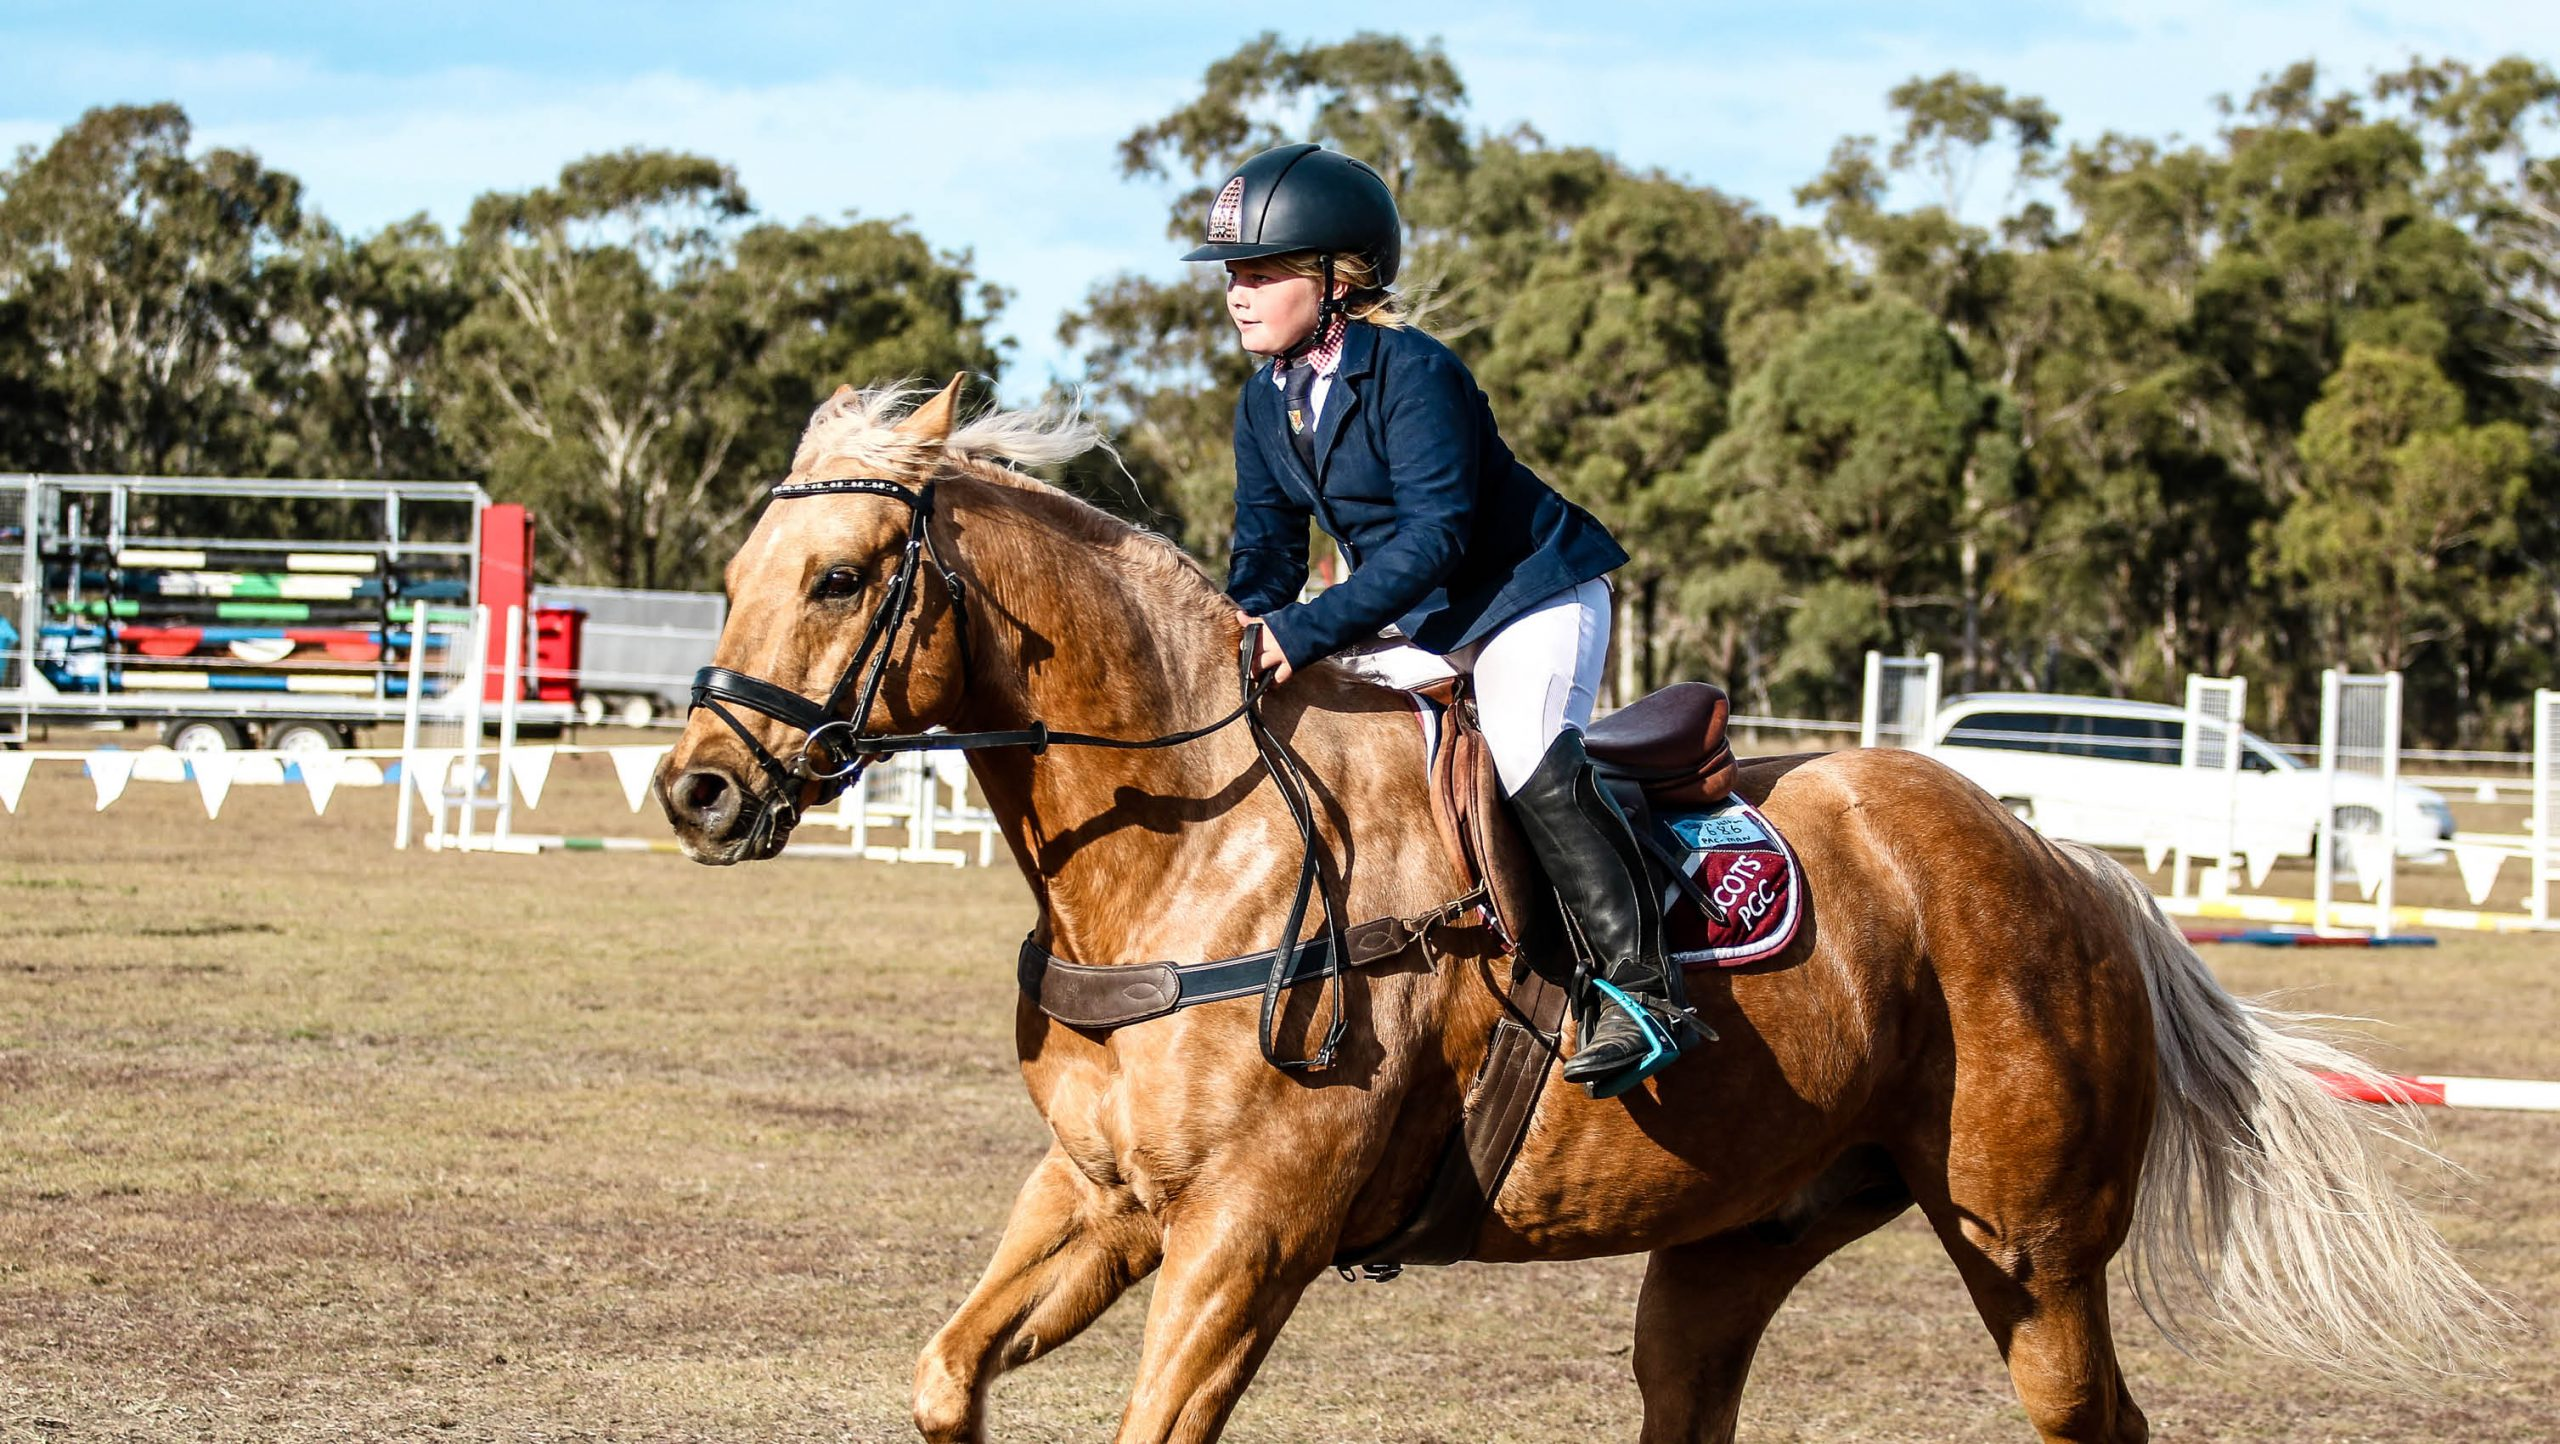 https://scotspgc.com.au/wp-content/uploads/2020/05/Girl-competing-in-equestrian-warwick-scaled.jpg